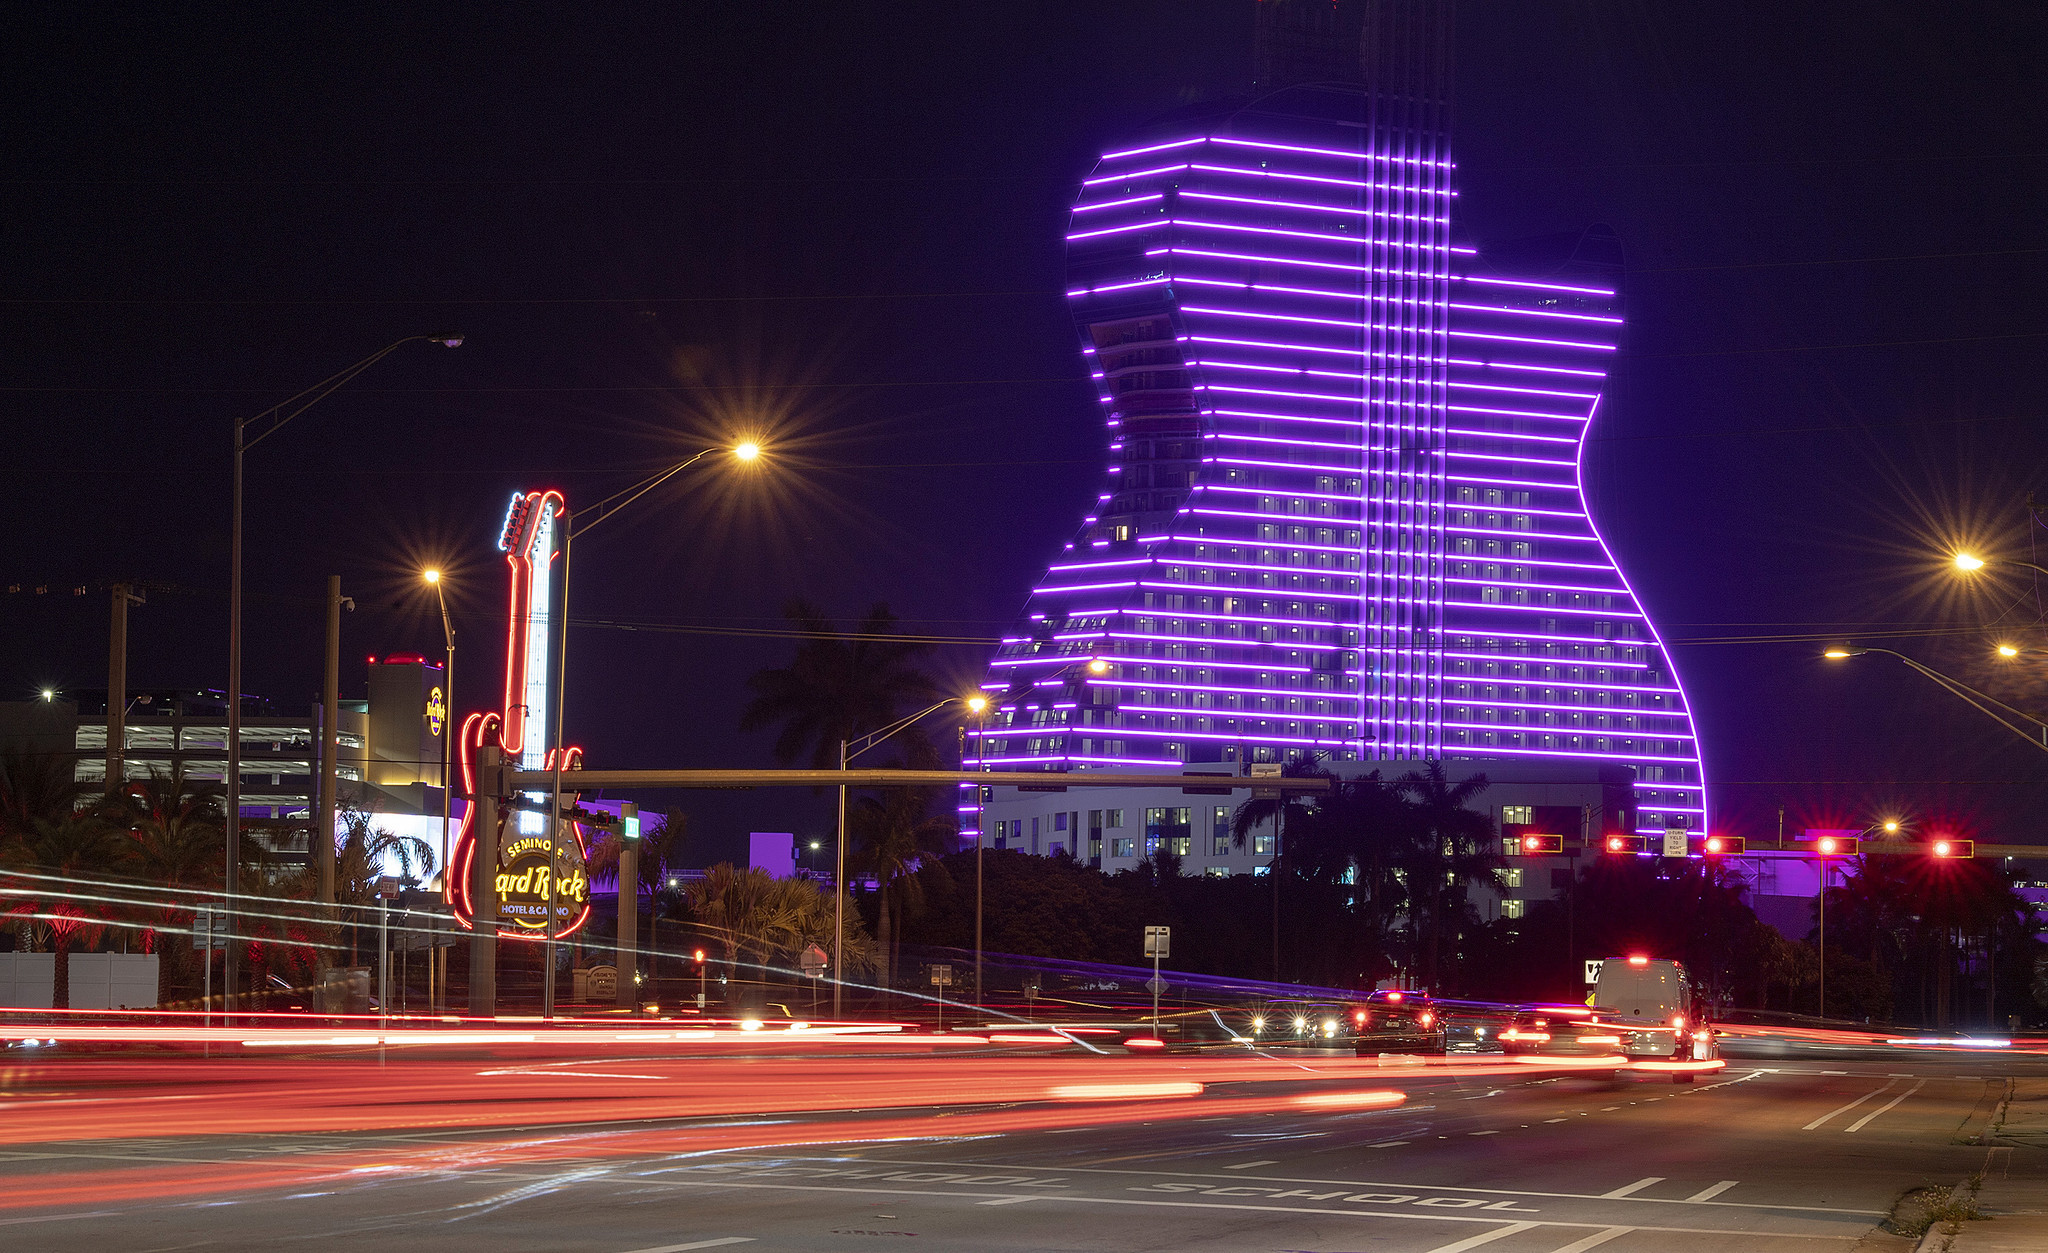 Hard Rock guitar hotel rooms go fast for grand opening